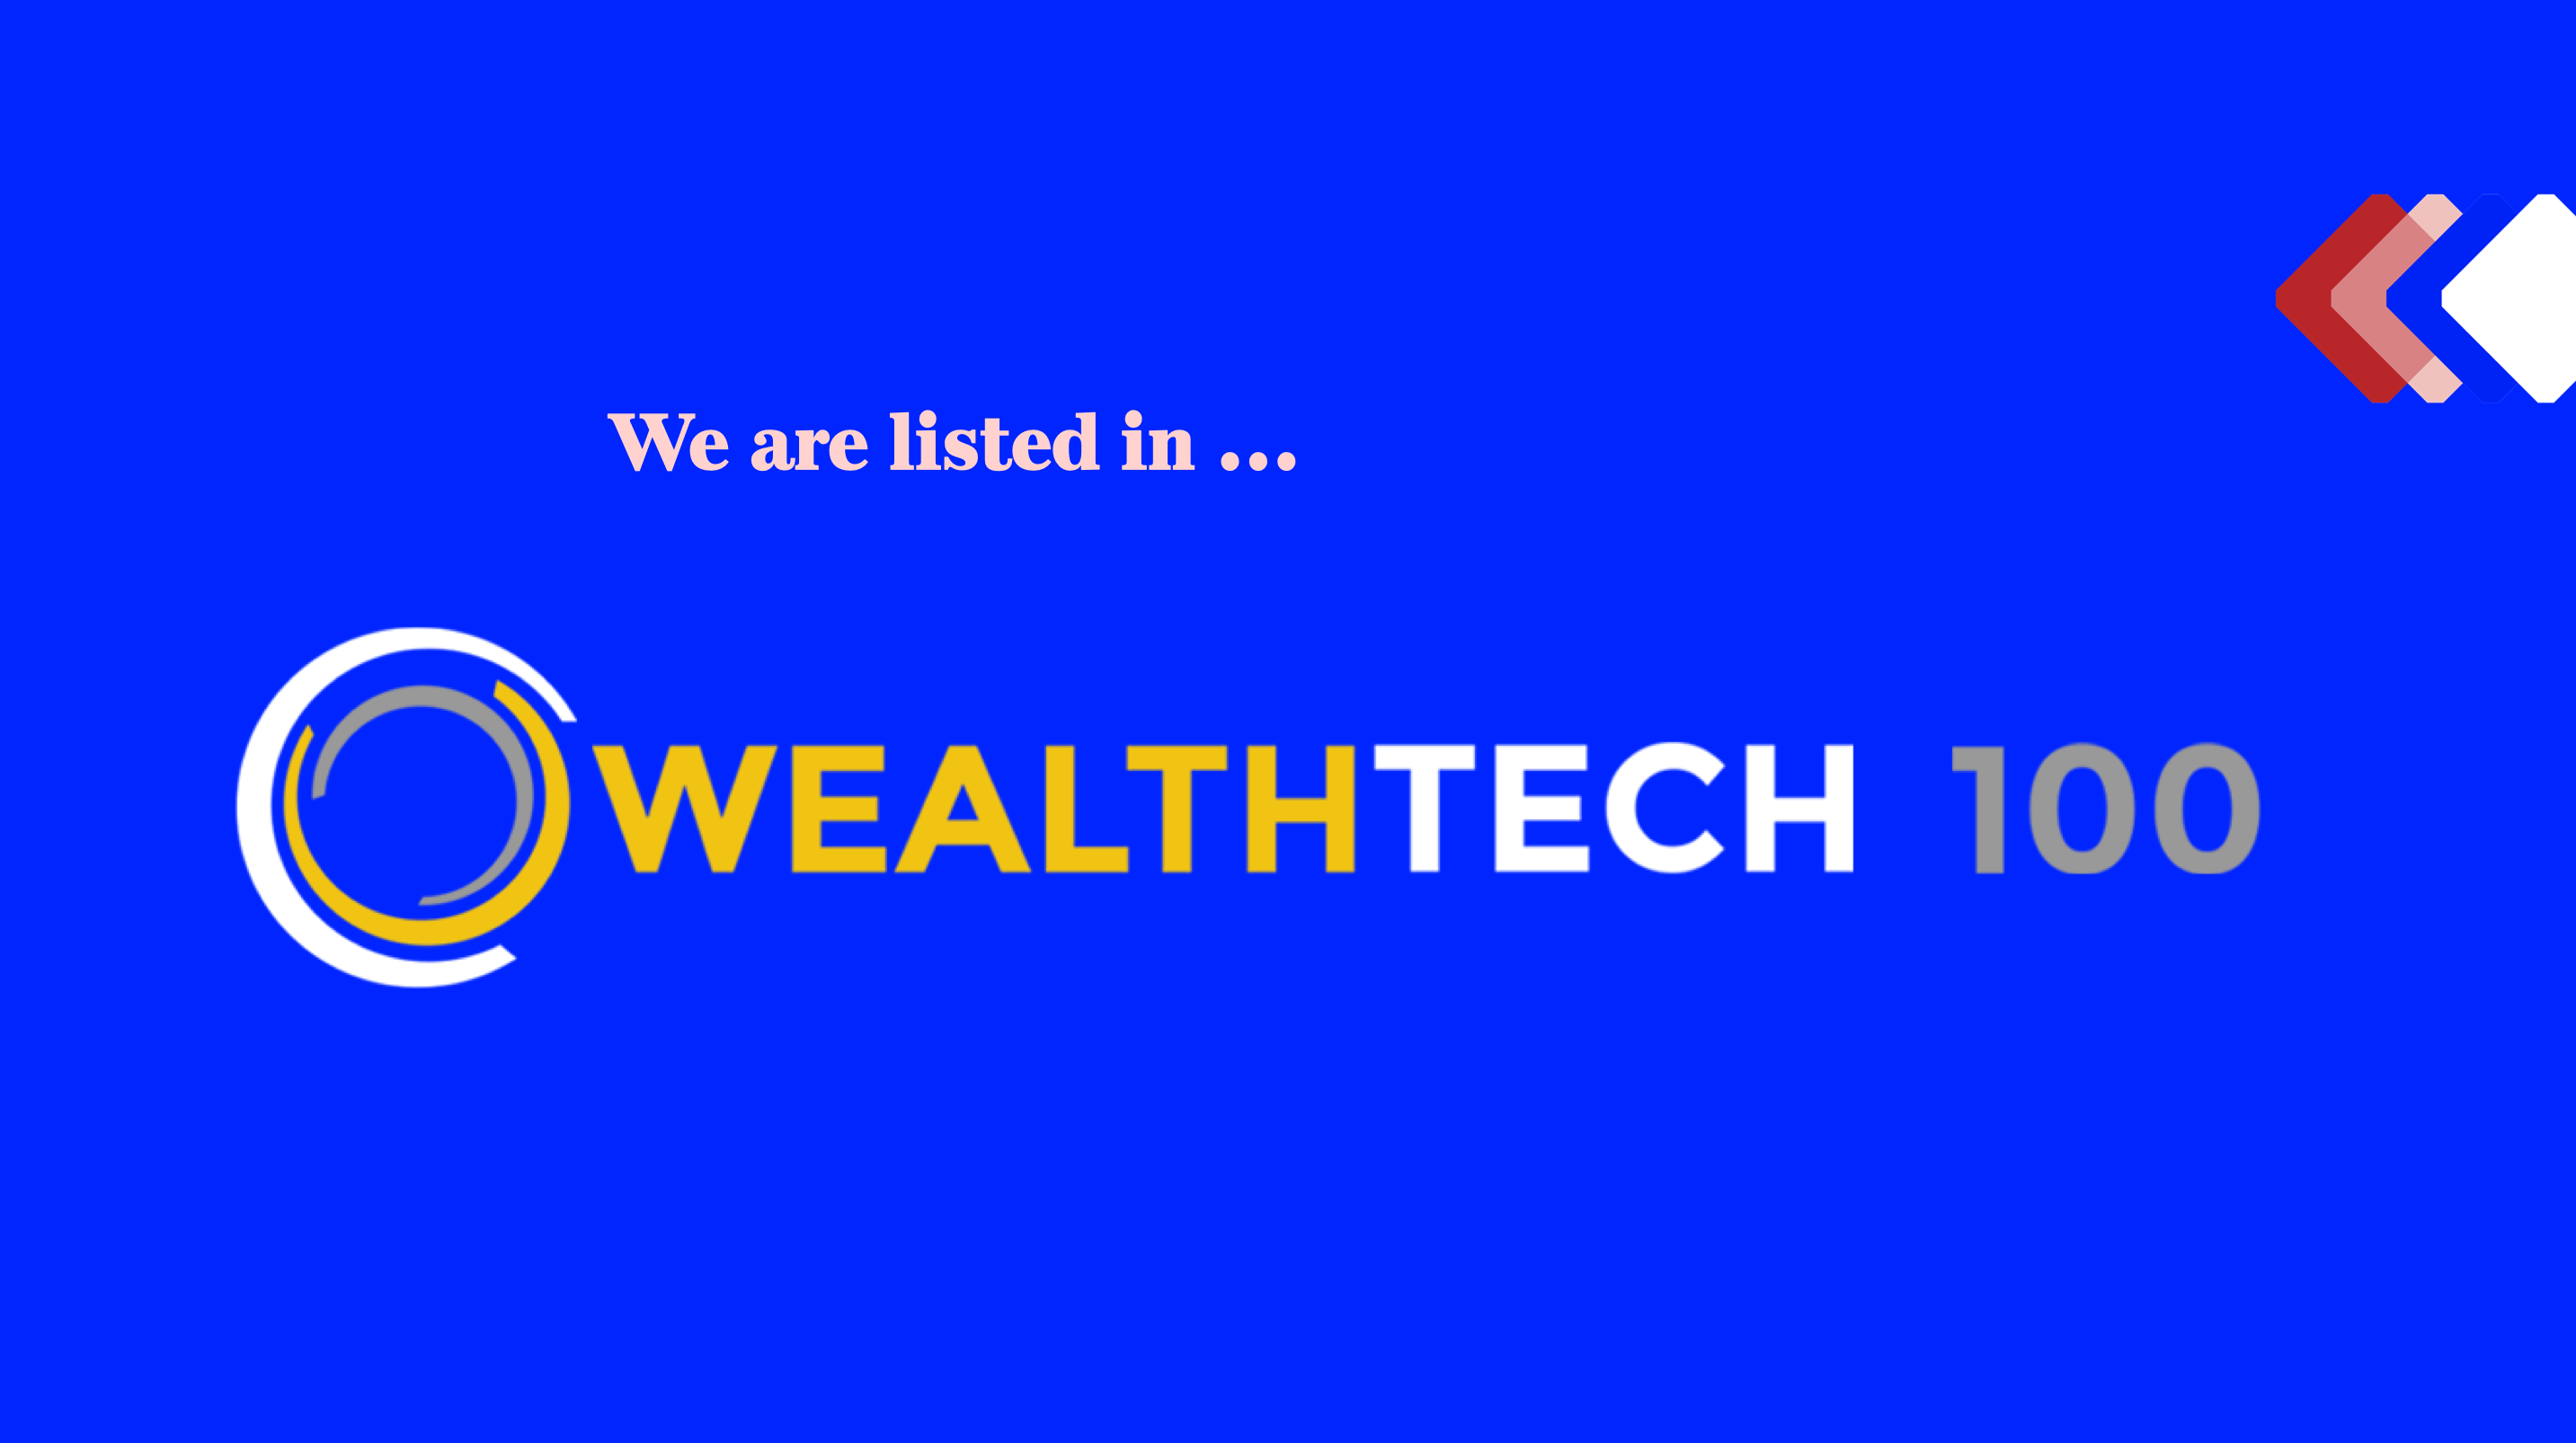 InvestSuite has been recognised as one of the world's most innovative solution providers in WealthTech100 for 2020